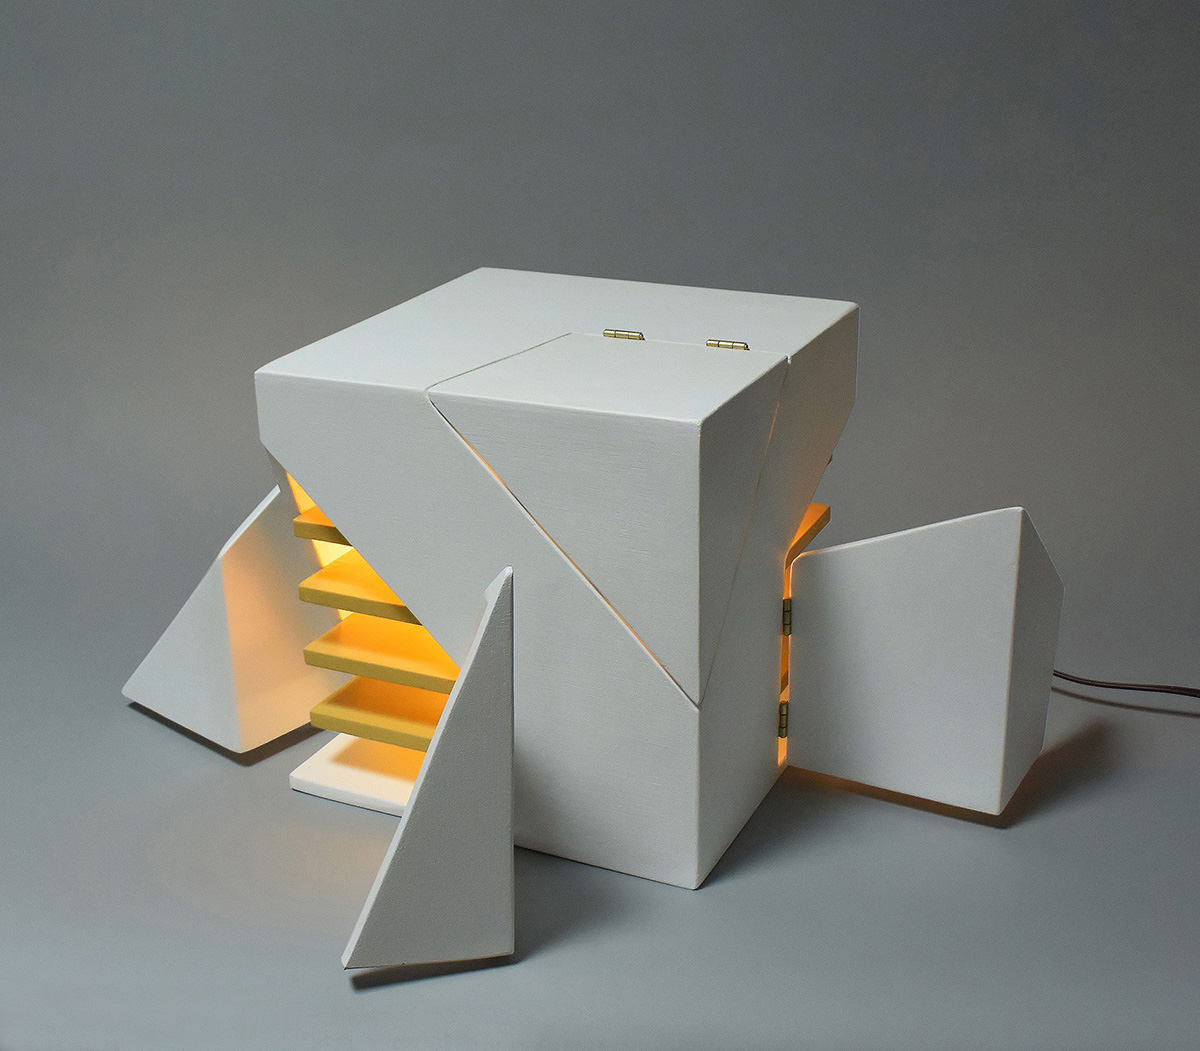 02-folding-light-michael-jantzen